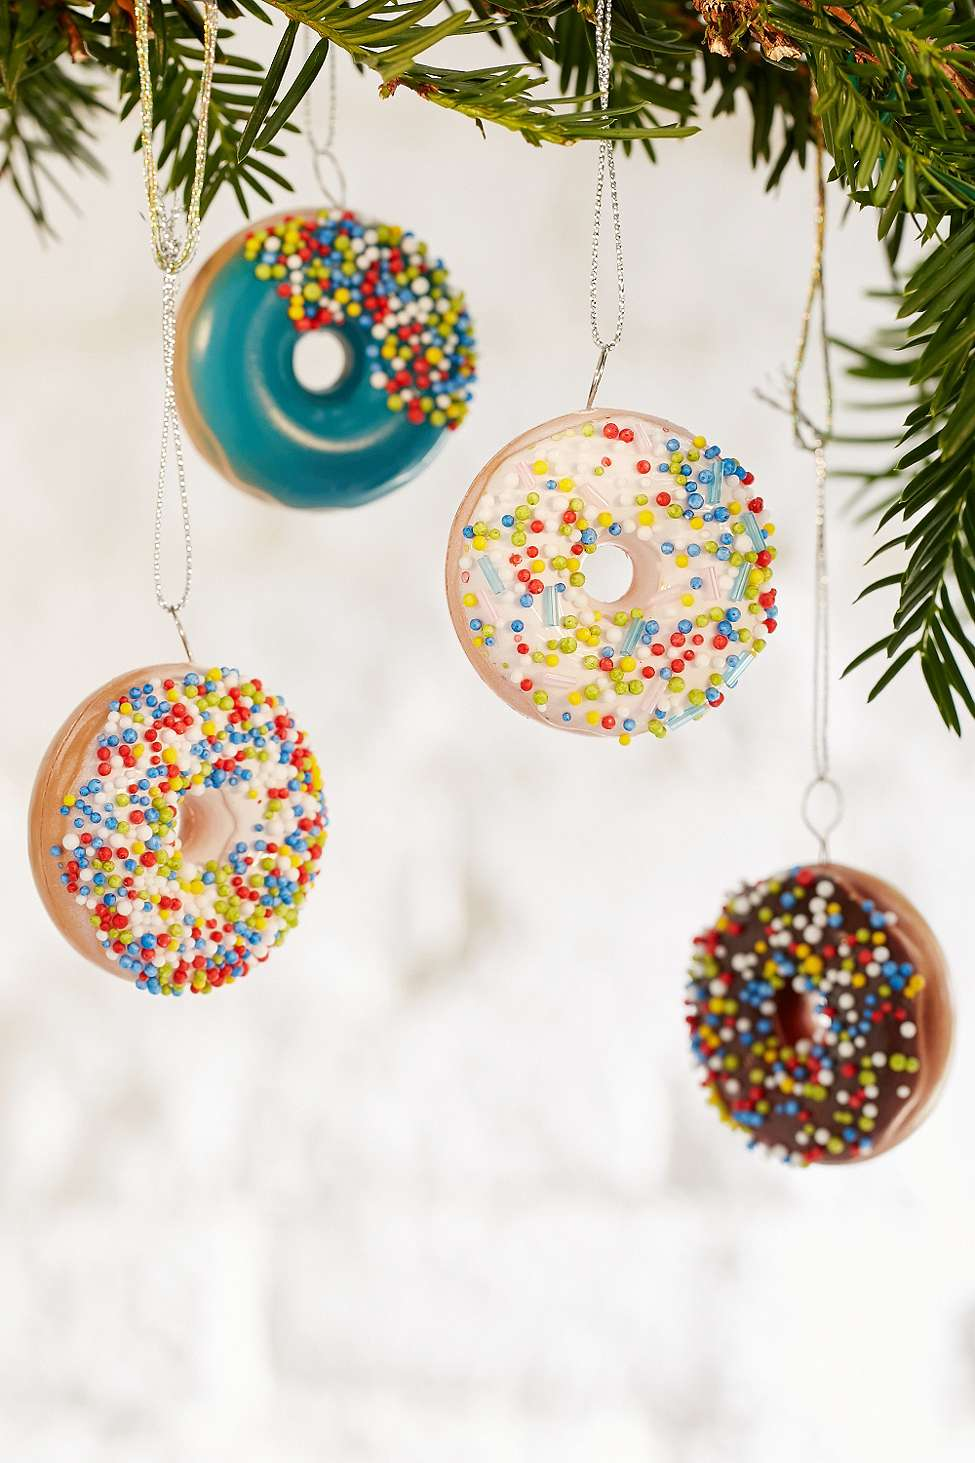 deco sapin gourmand